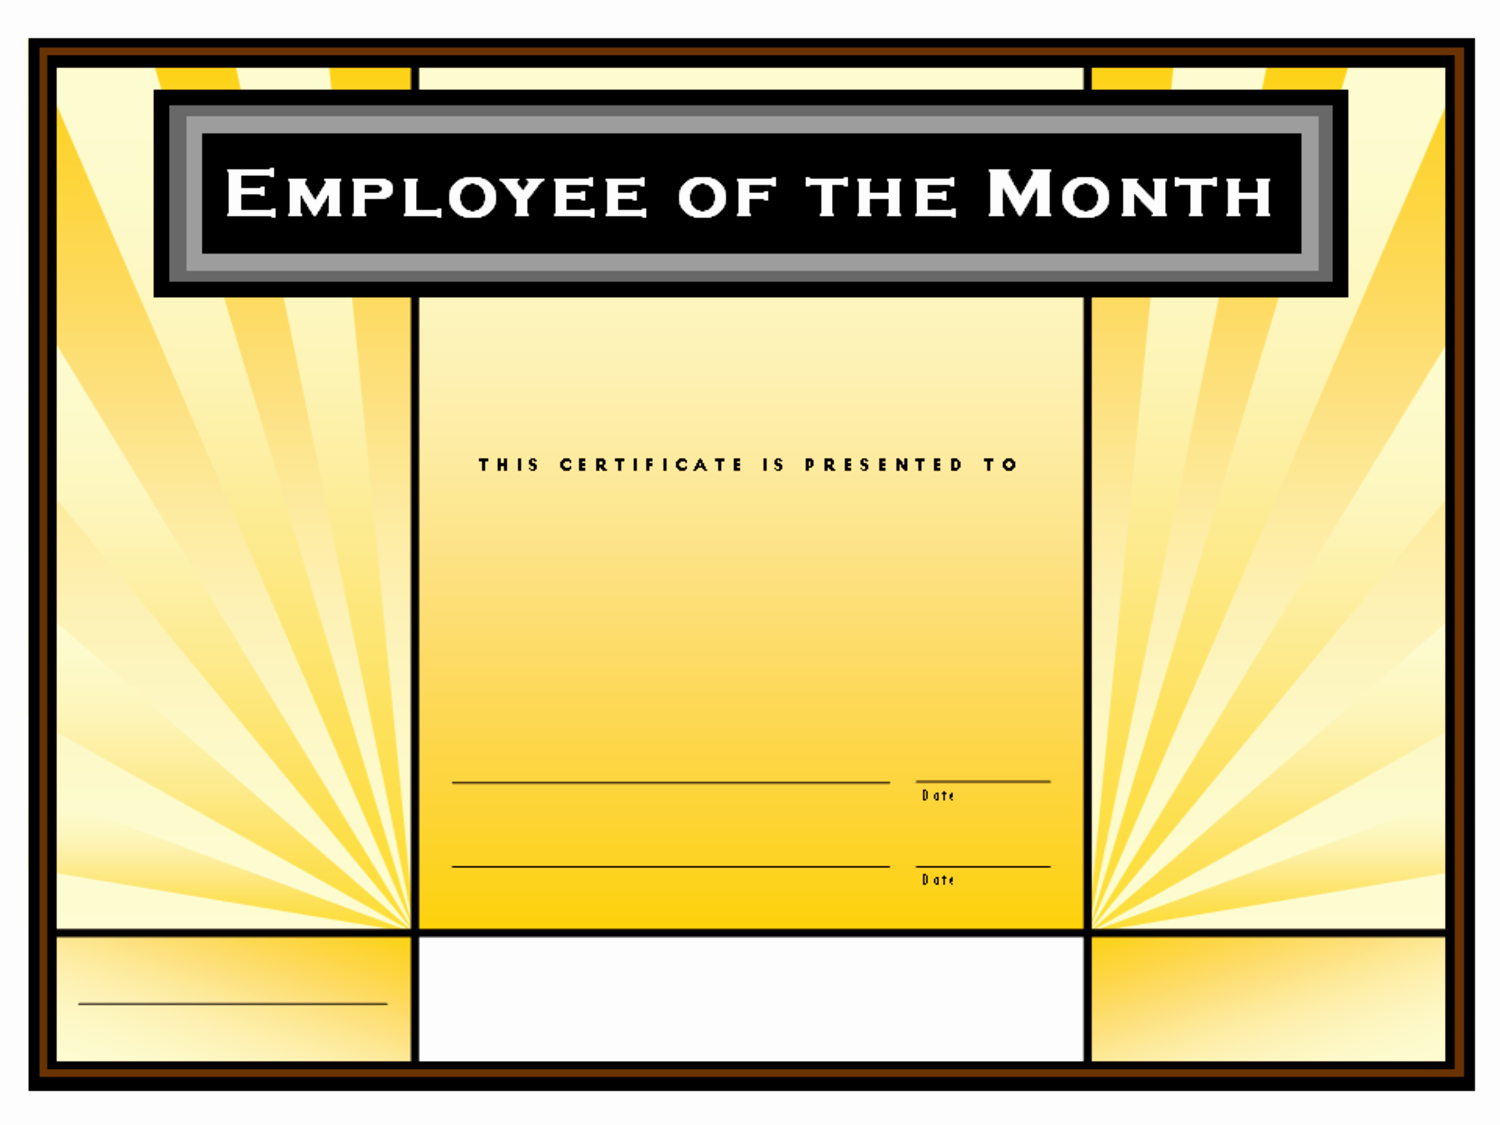 Employee Of the Month Template Unique Employee Of the Month format Driverlayer Search Engine